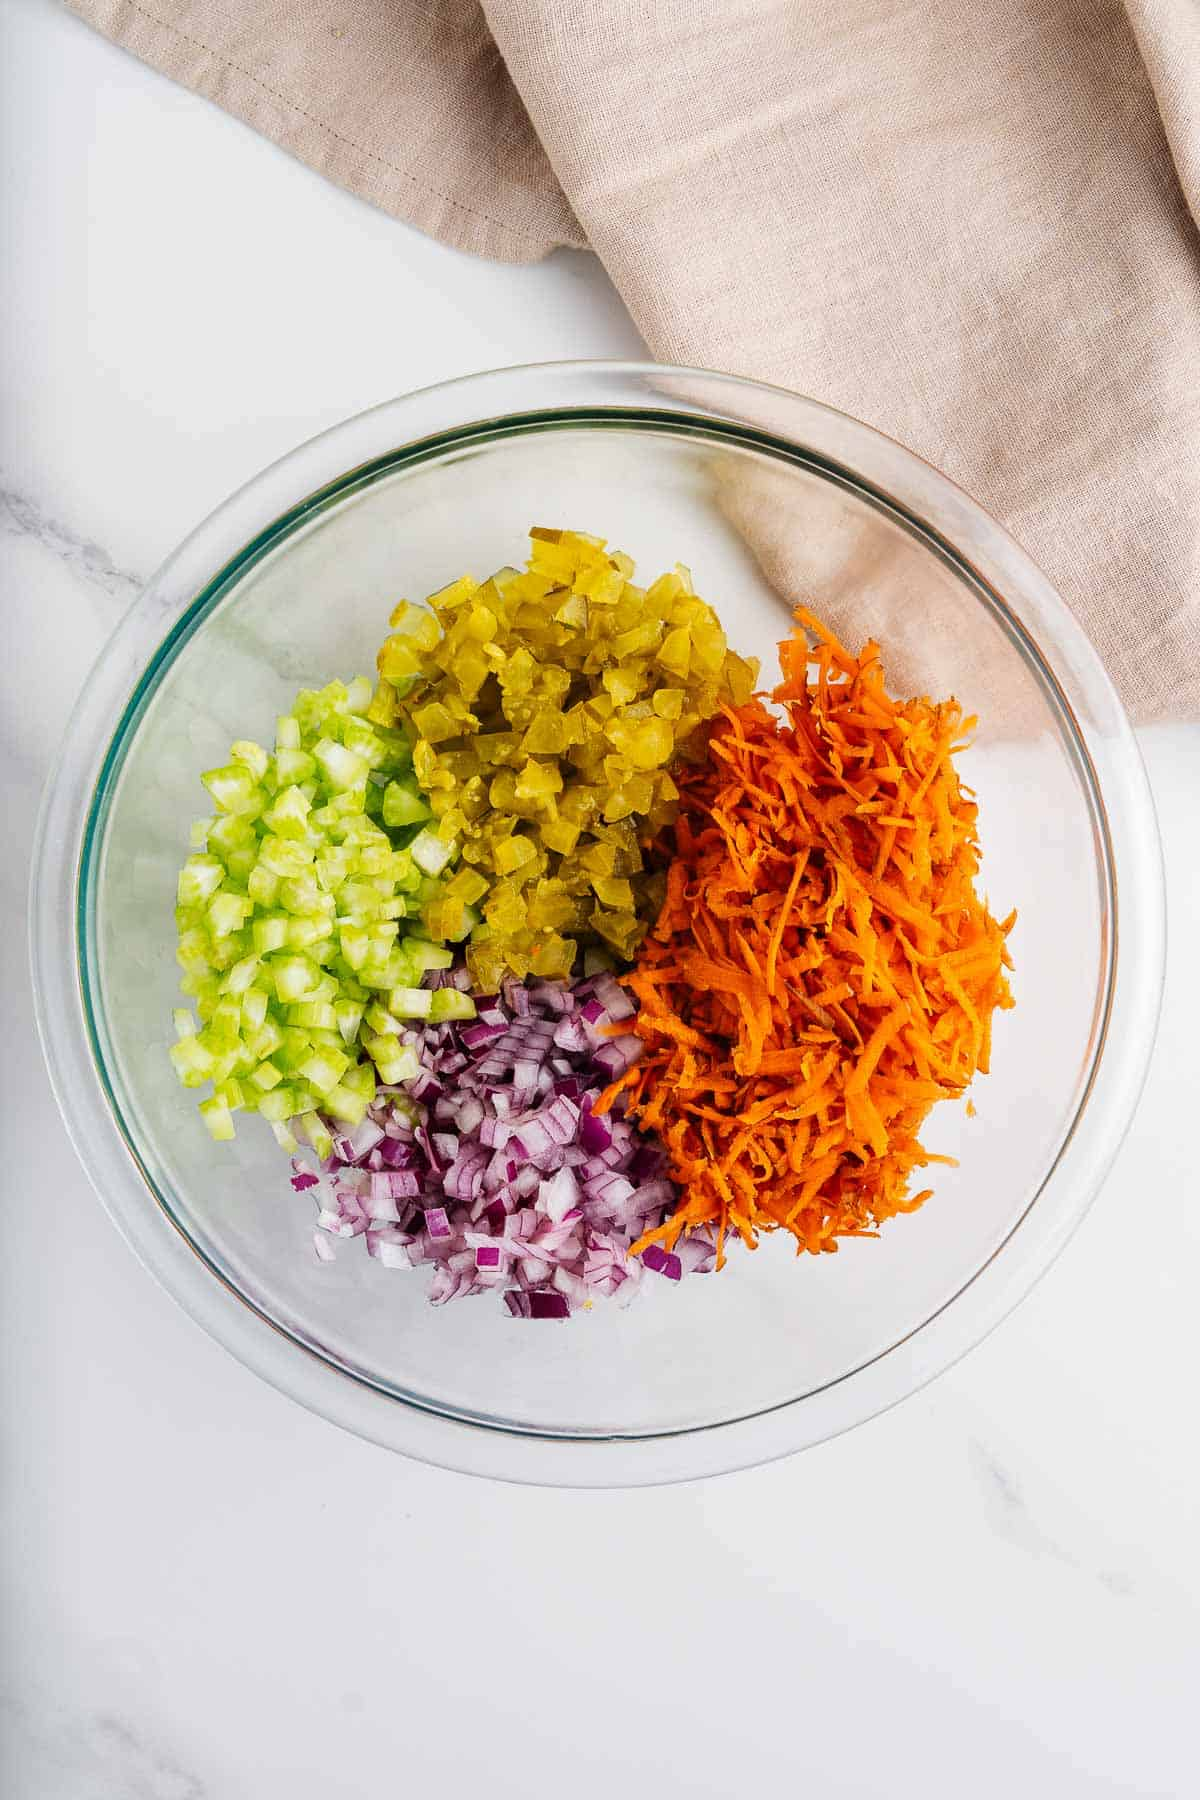 Chopped Pickles, Celery, Carrots, and Onions in a Bowl